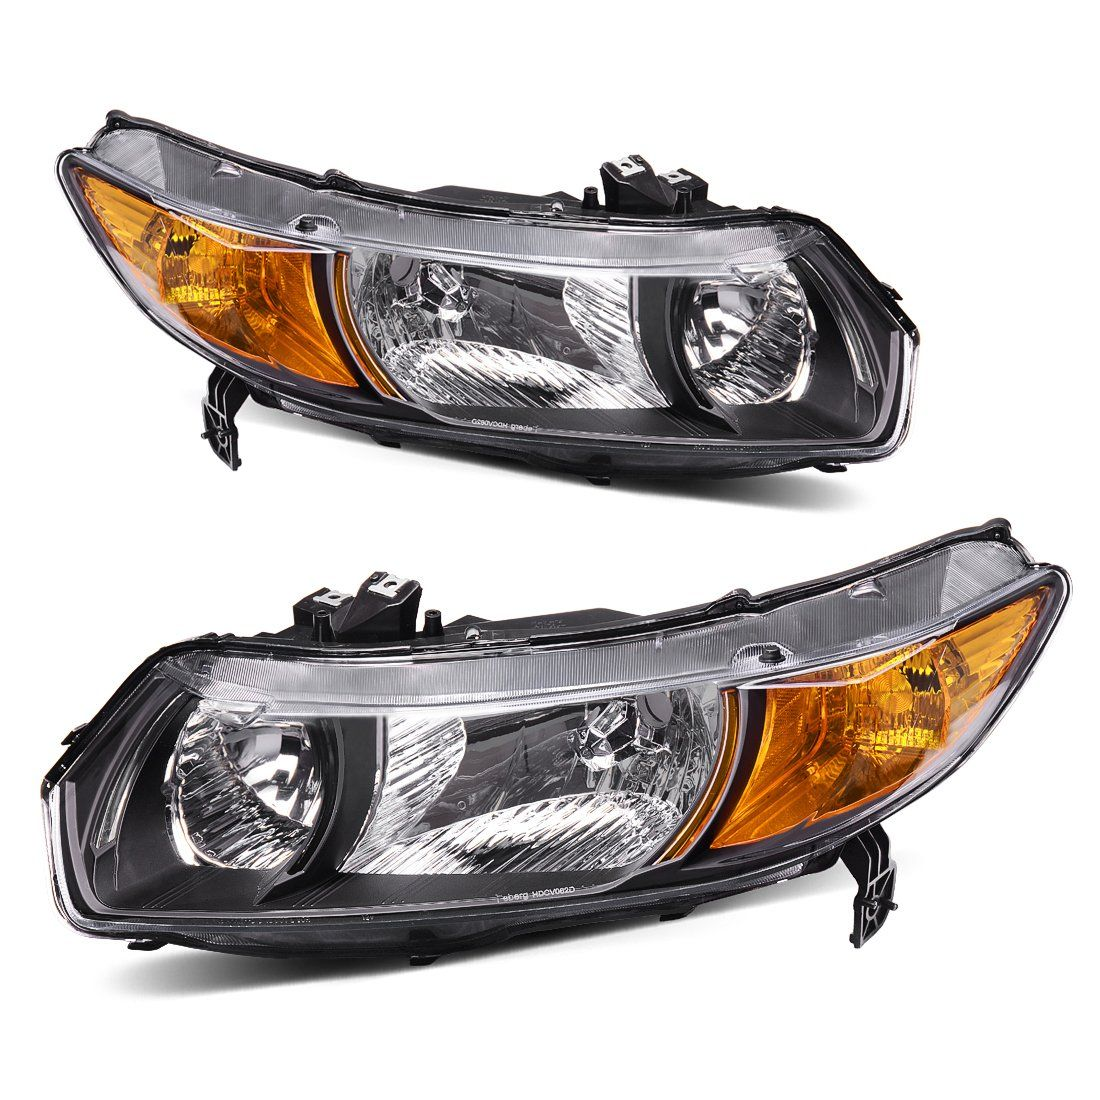 Headlight Assembly Oe Style Replacement Direct For 2006 2011 Honda Civic Coupe Headlamps Black Housing With Ambe 2011 Honda Civic Civic Coupe Honda Civic Coupe